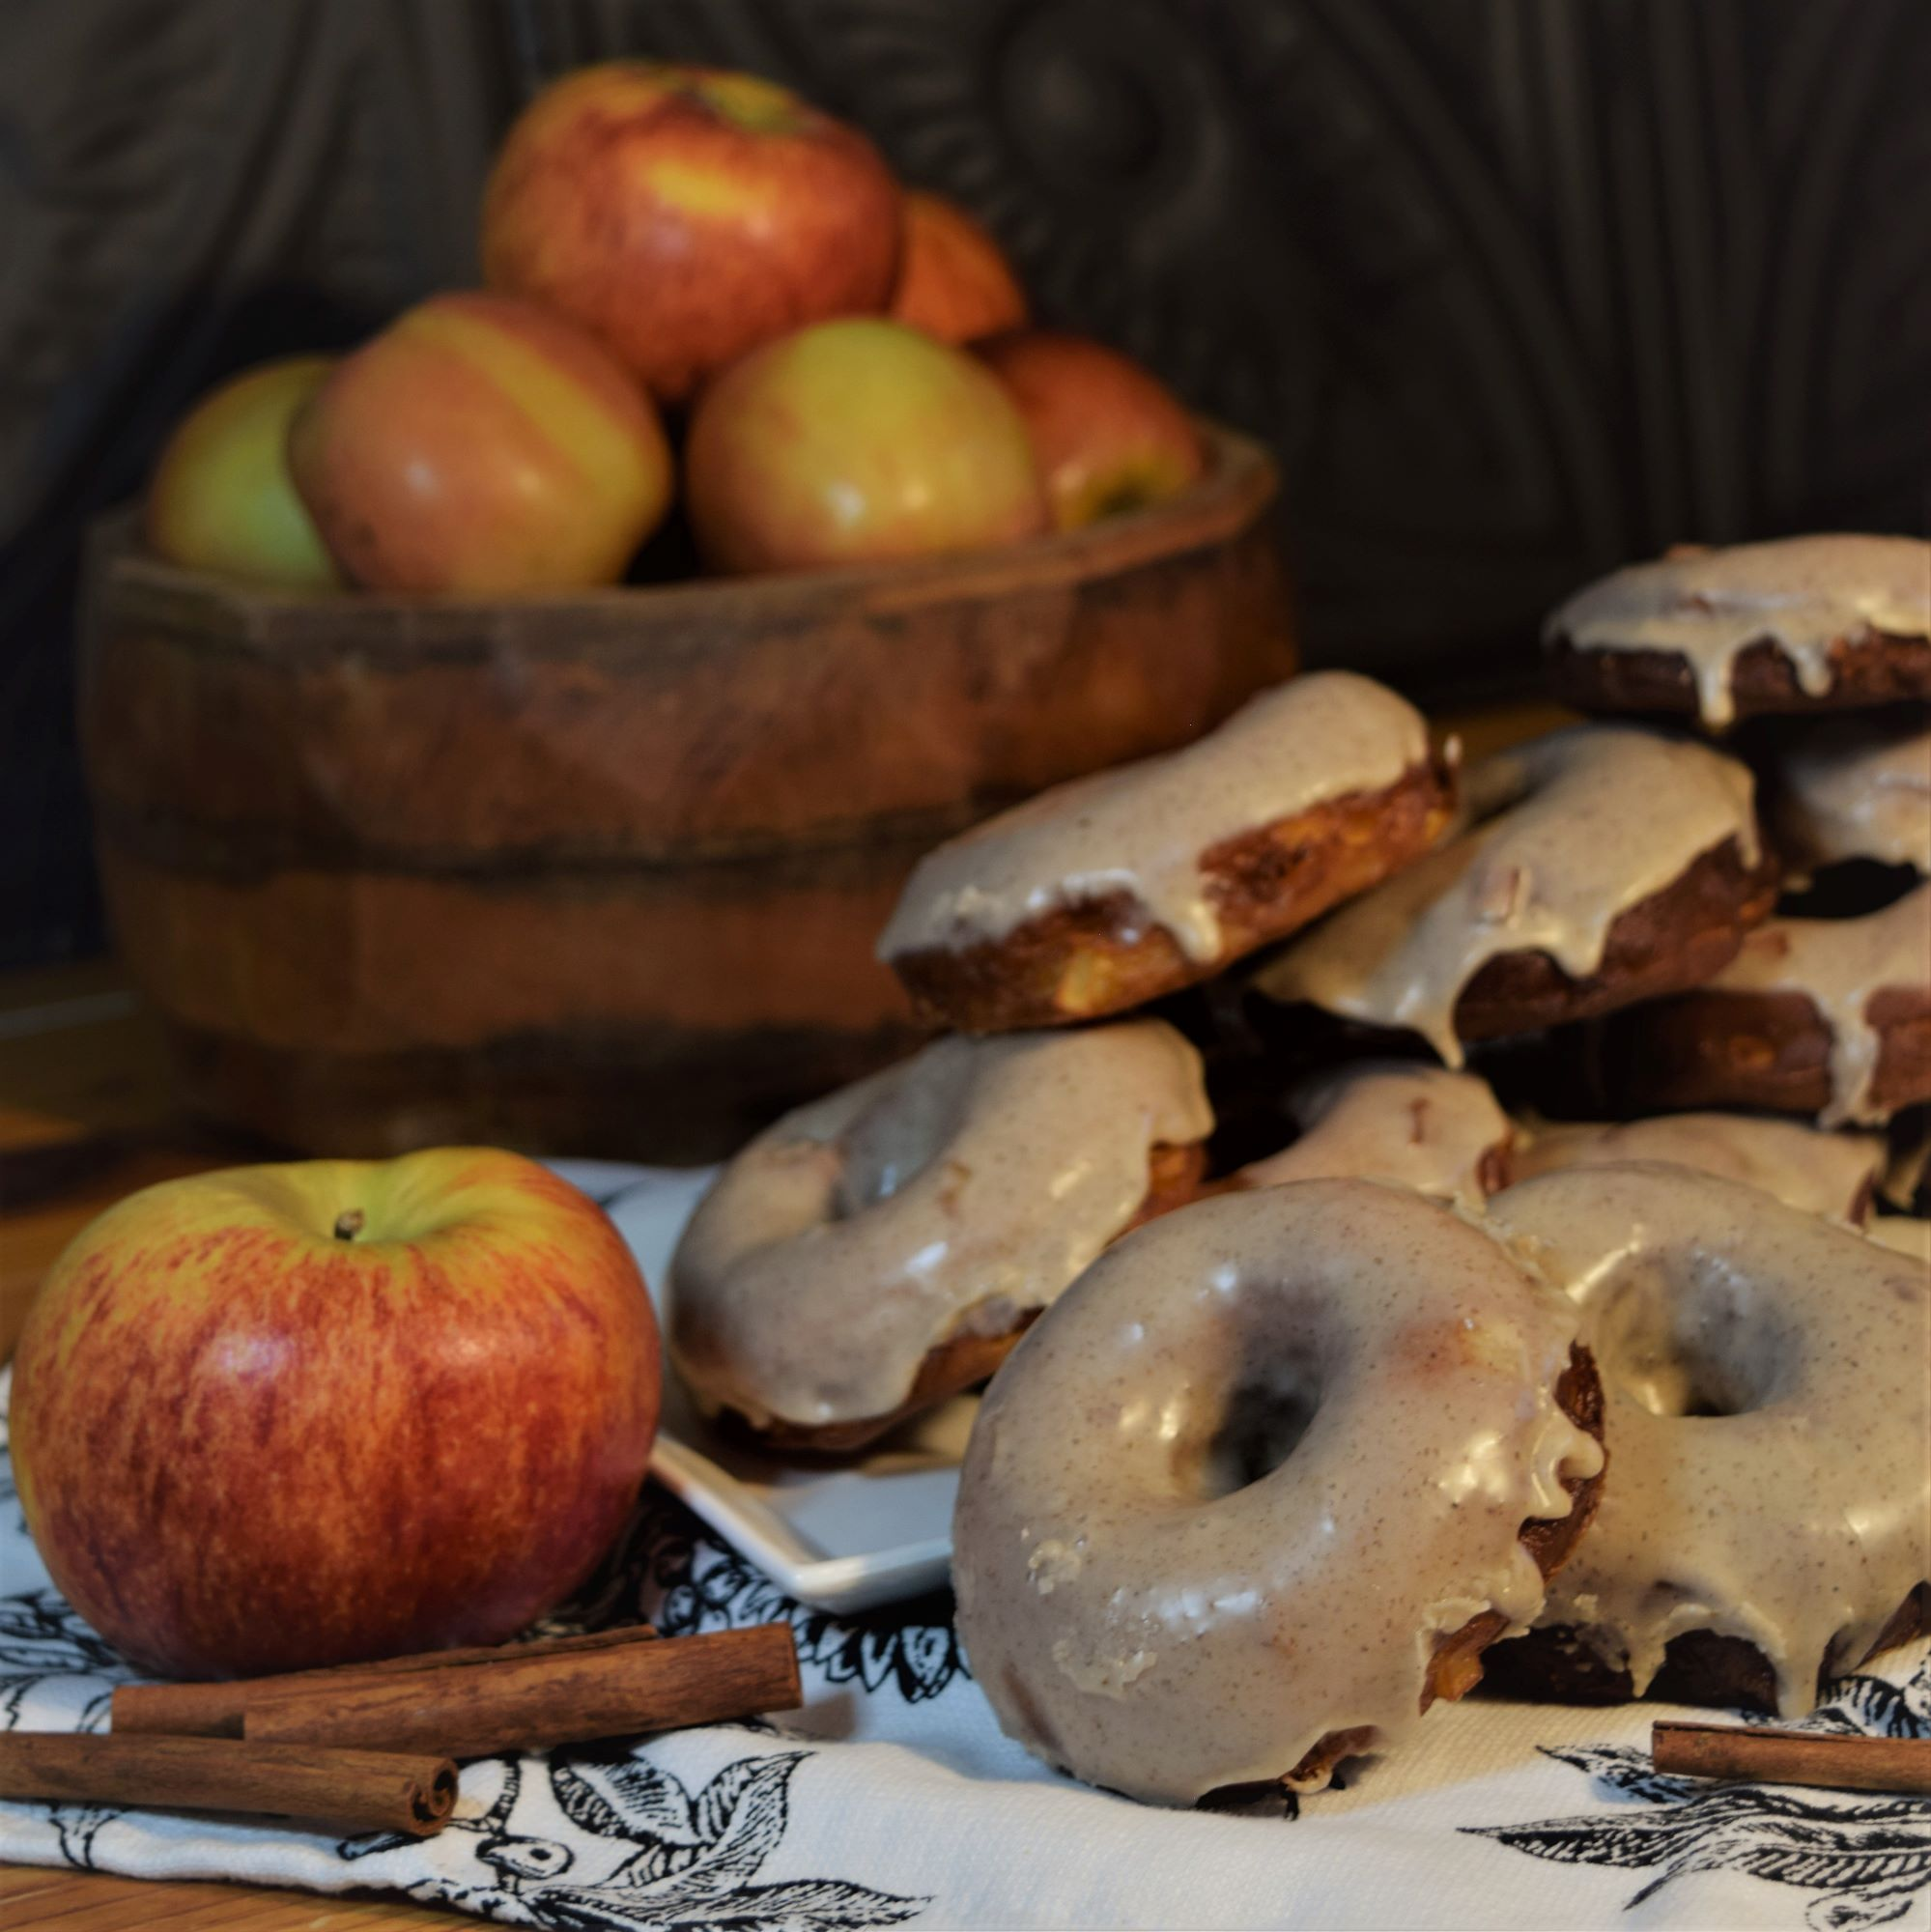 Apple Cider Donuts for All the Fall Feels